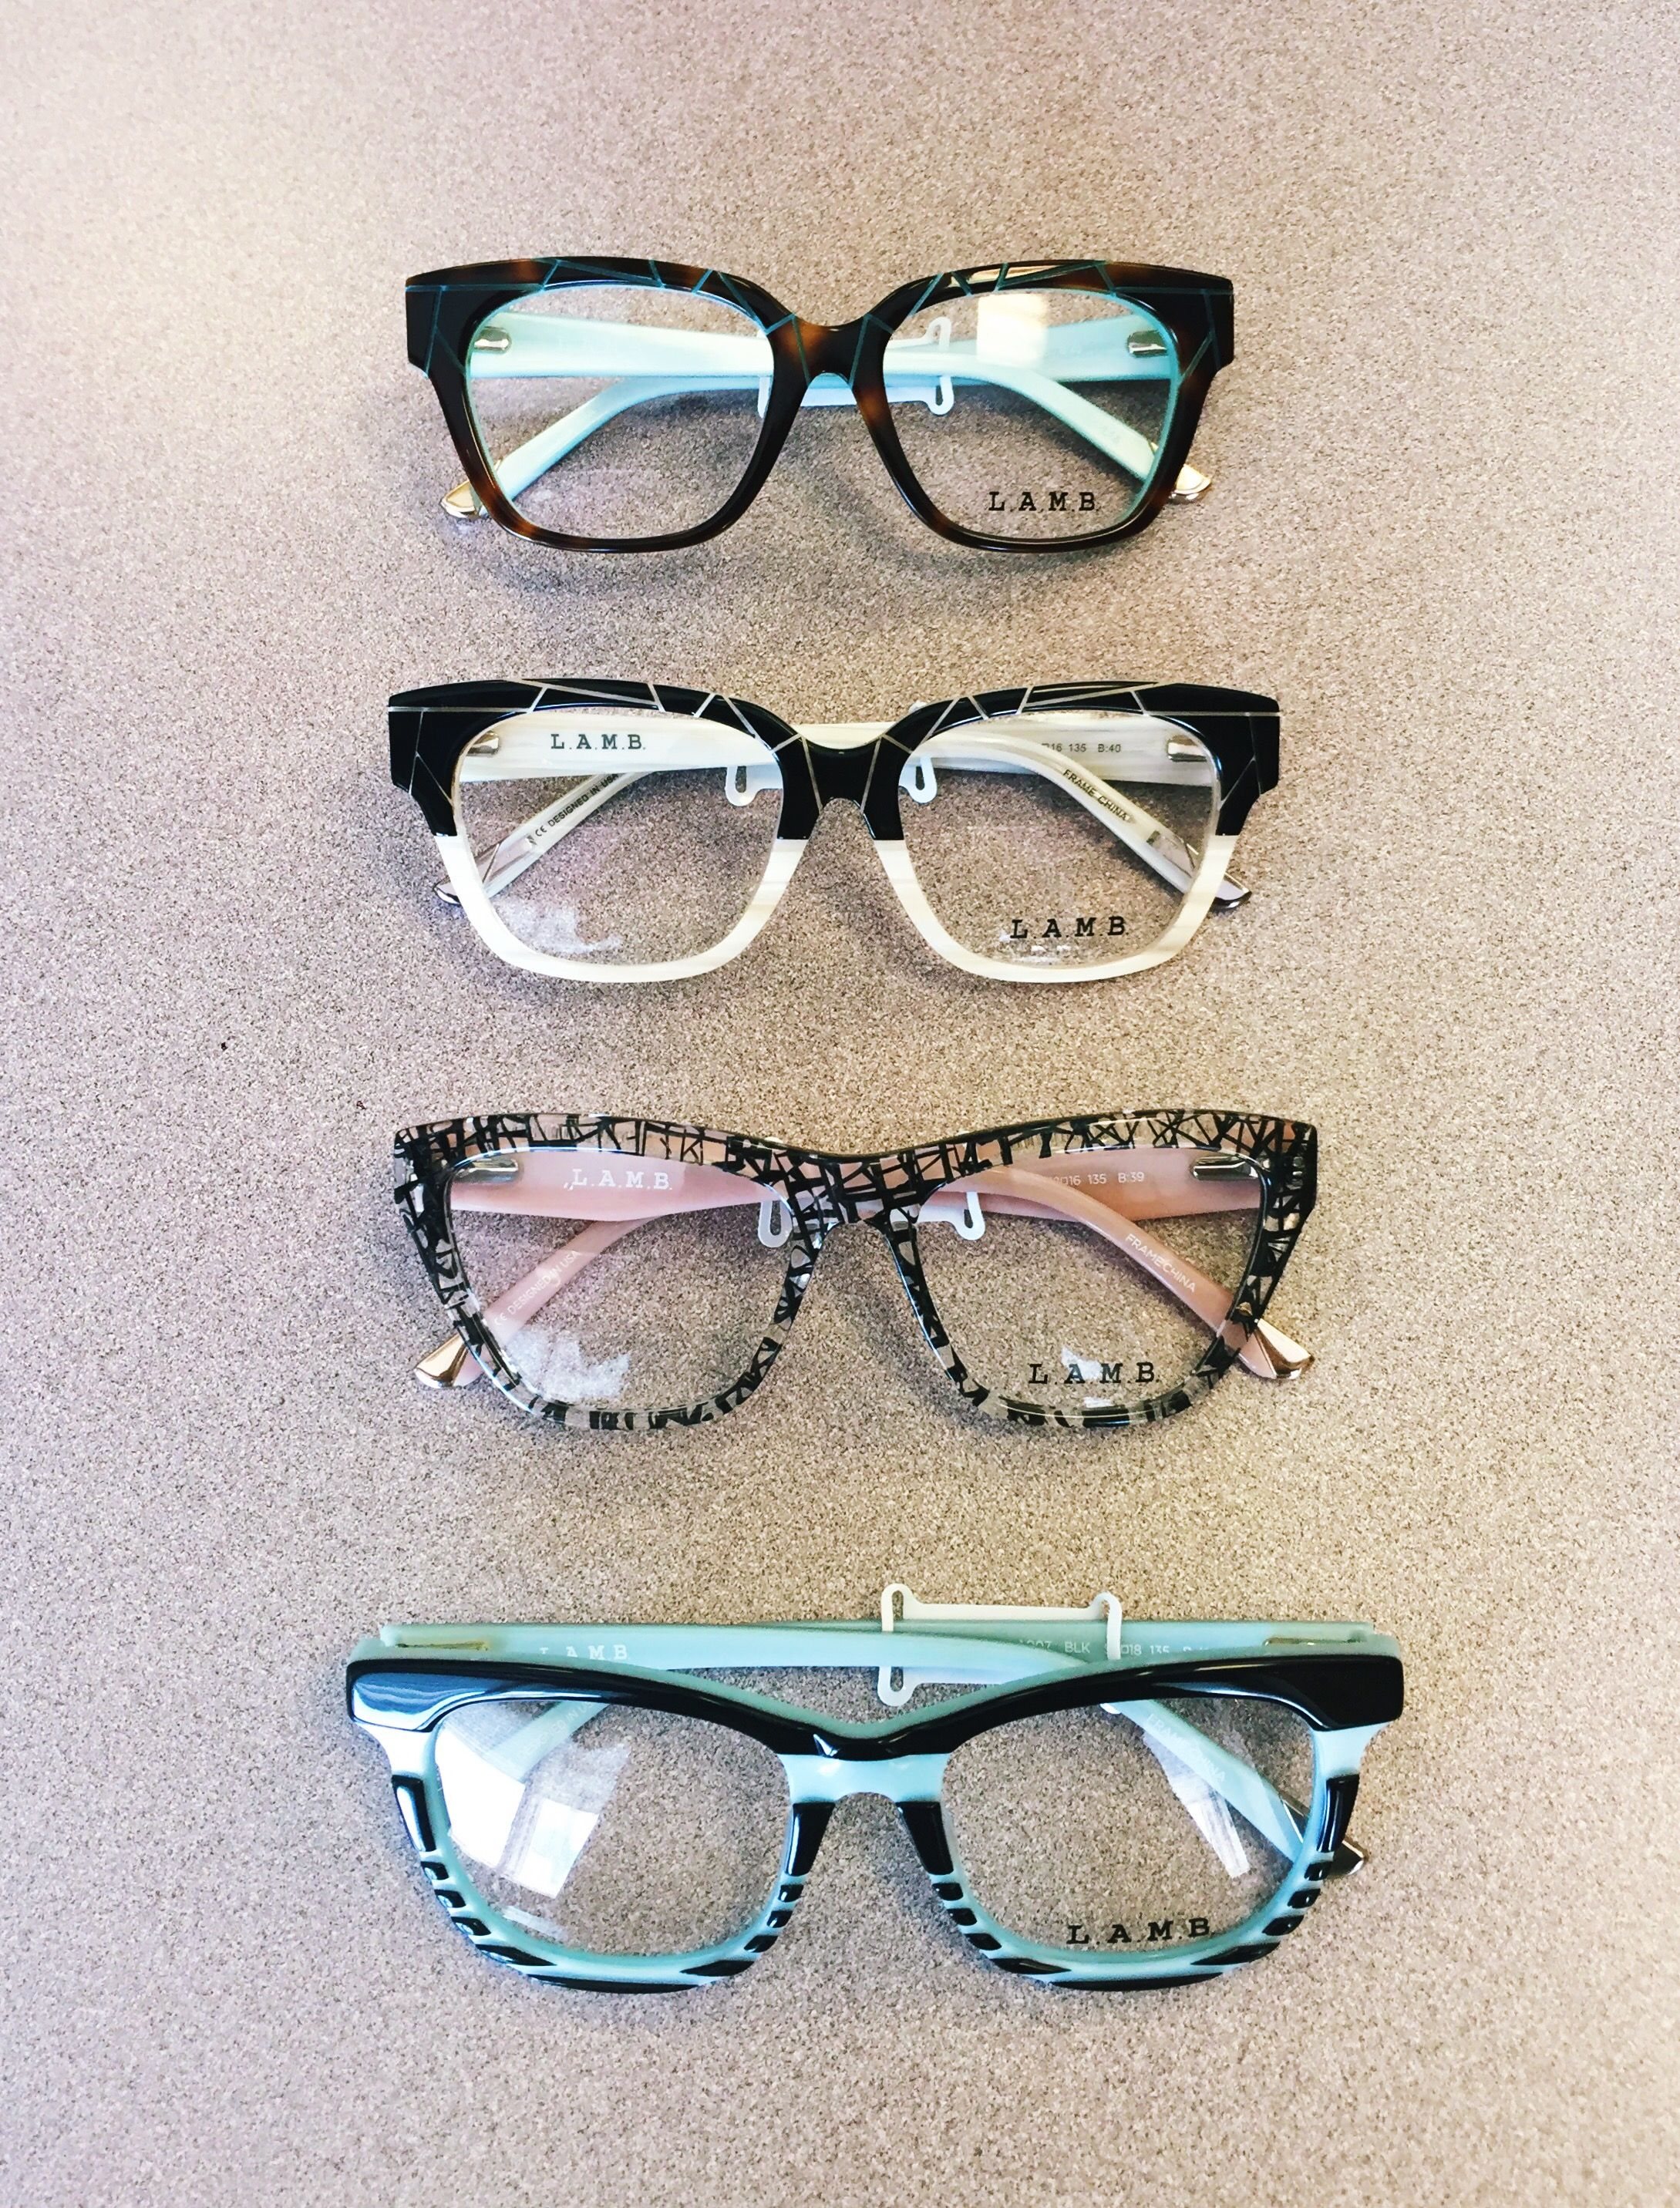 Just frames for glasses - Look At These New L A M B By Gwen Stefani Frames We Just Received Stop By And